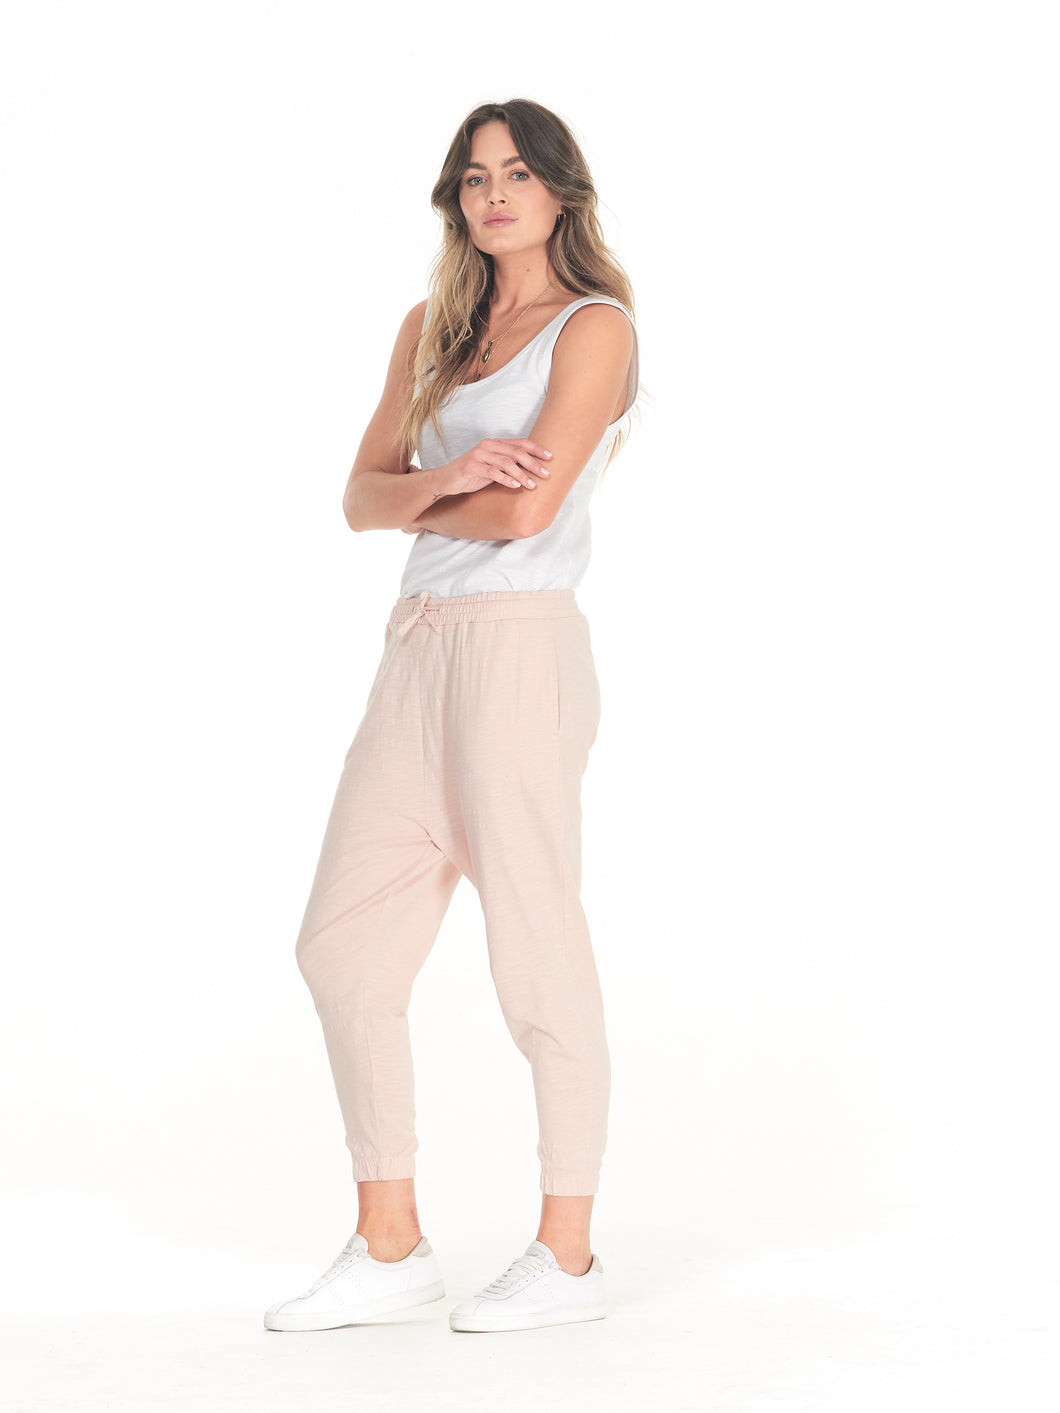 Cle Aybrey Pants Cle Aybrey Lounge Pants Cle Organic clothing stockist australia CLE ORGANIC AYBREY PANTS AYBREY LOUNGE PANTS BASIC STATE AUSTRALIAN CLE STOCKIST